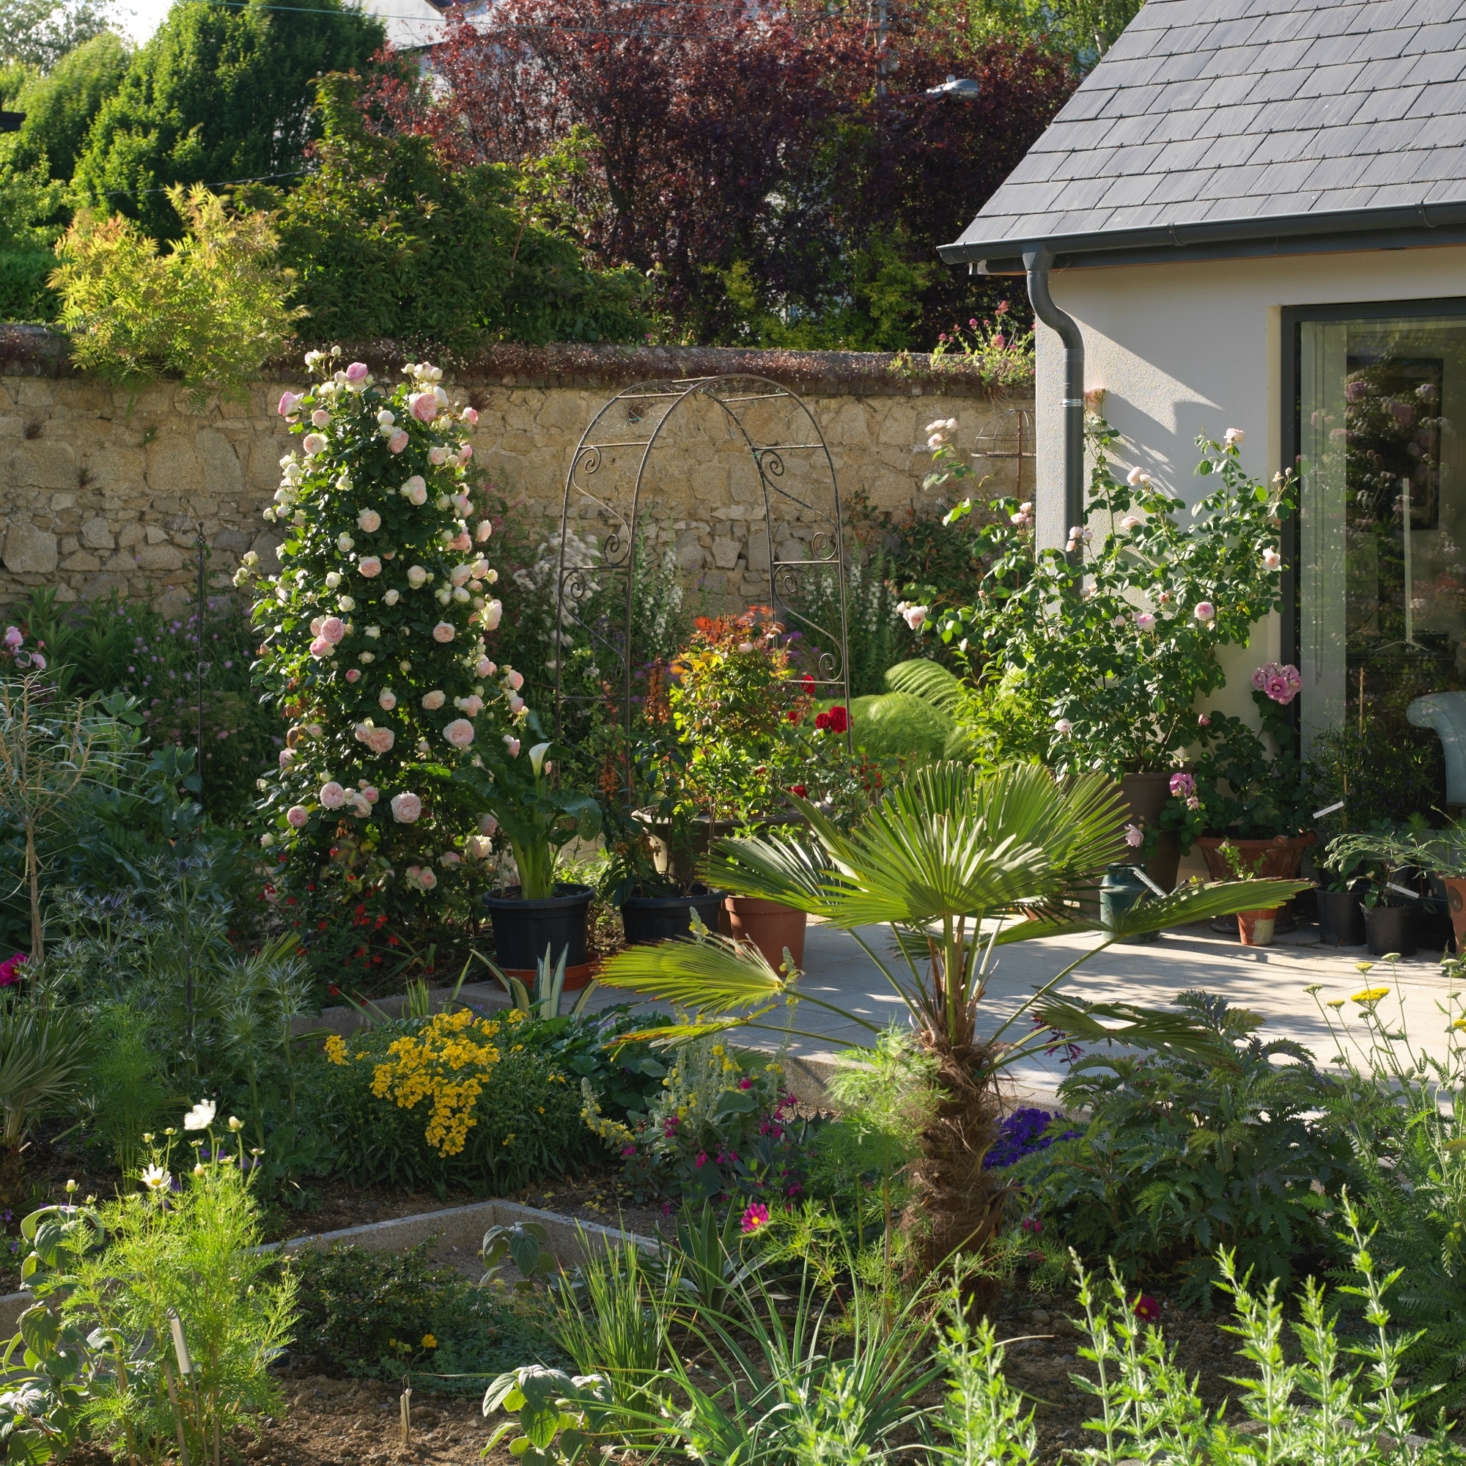 The walls of the sunny garden provide shelter from wind to climbing roses, including pink &#8